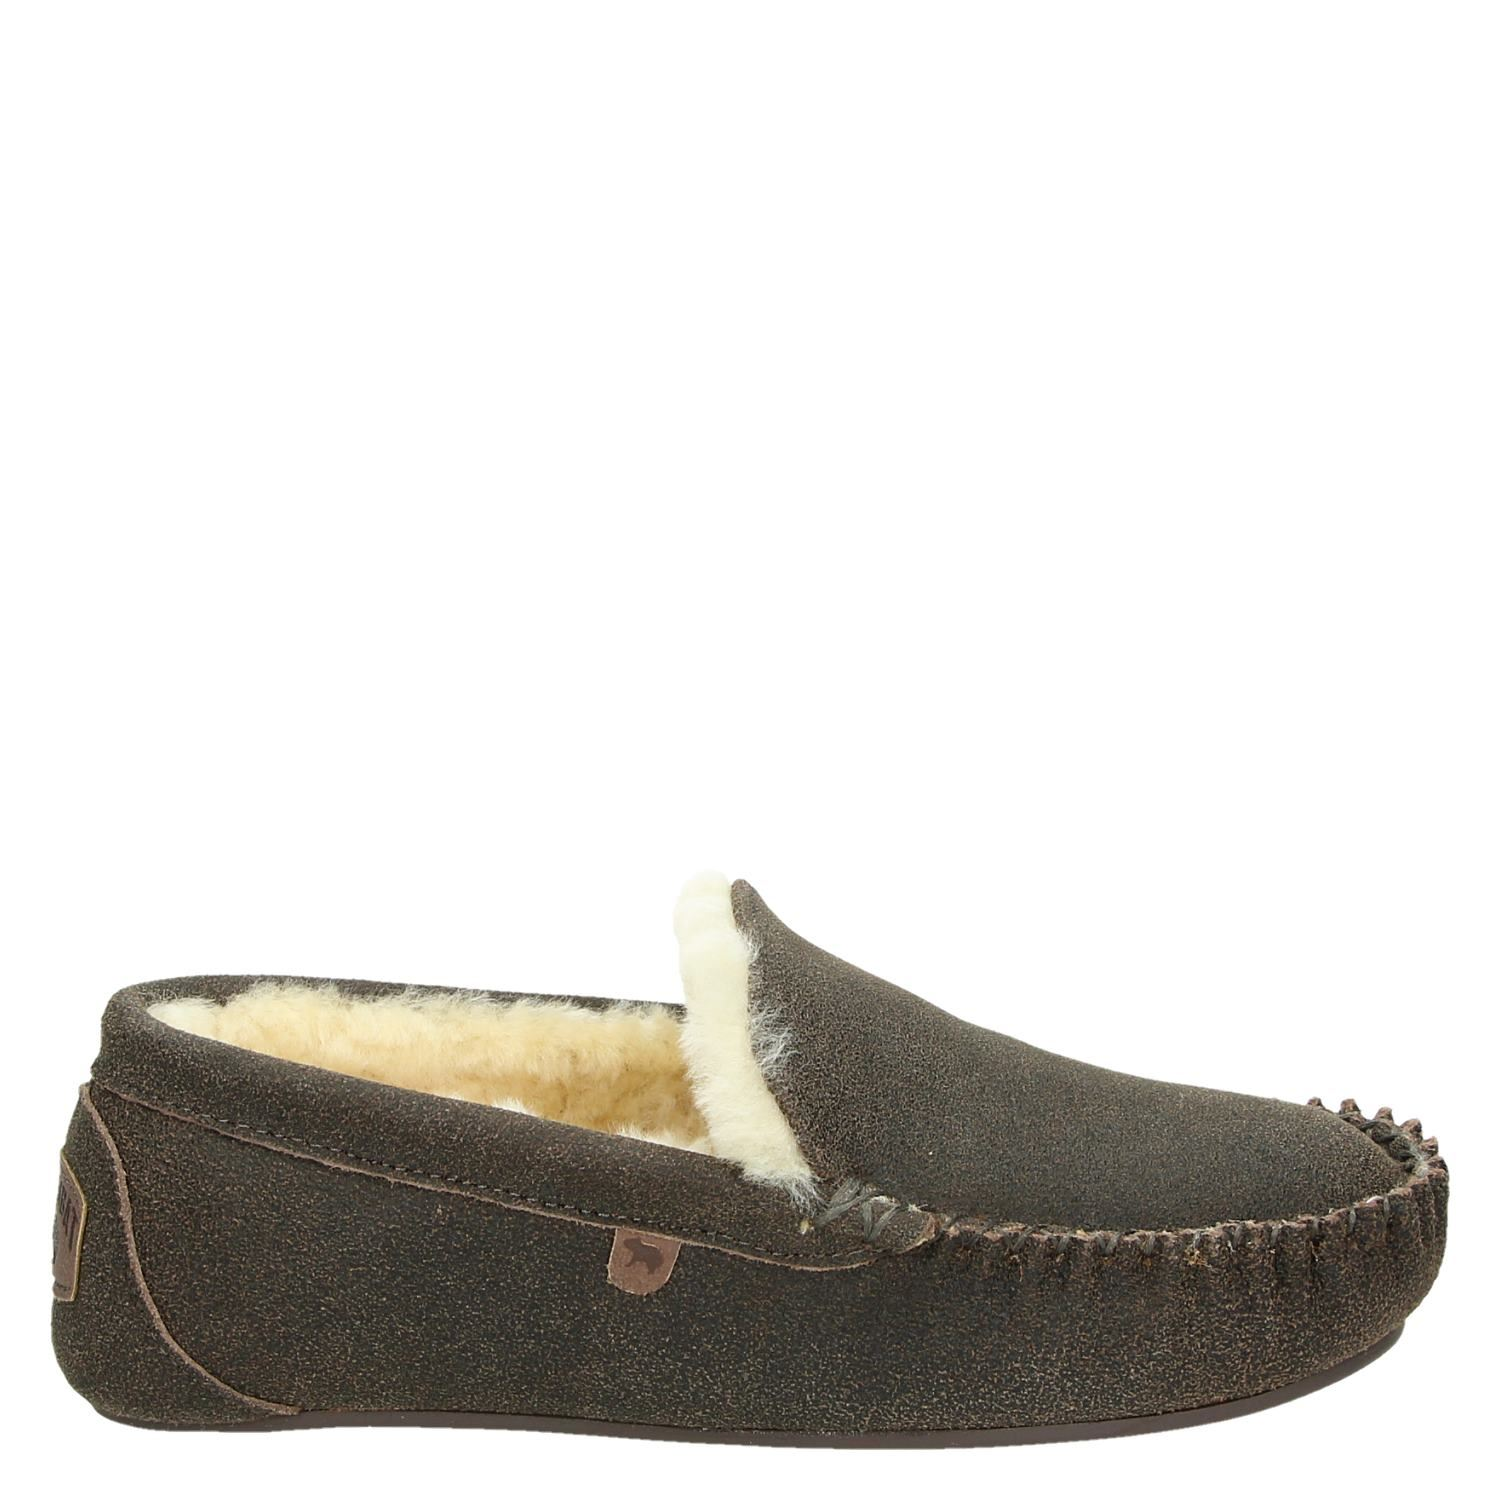 36 Chaussons Brown Par Ara hycG33W